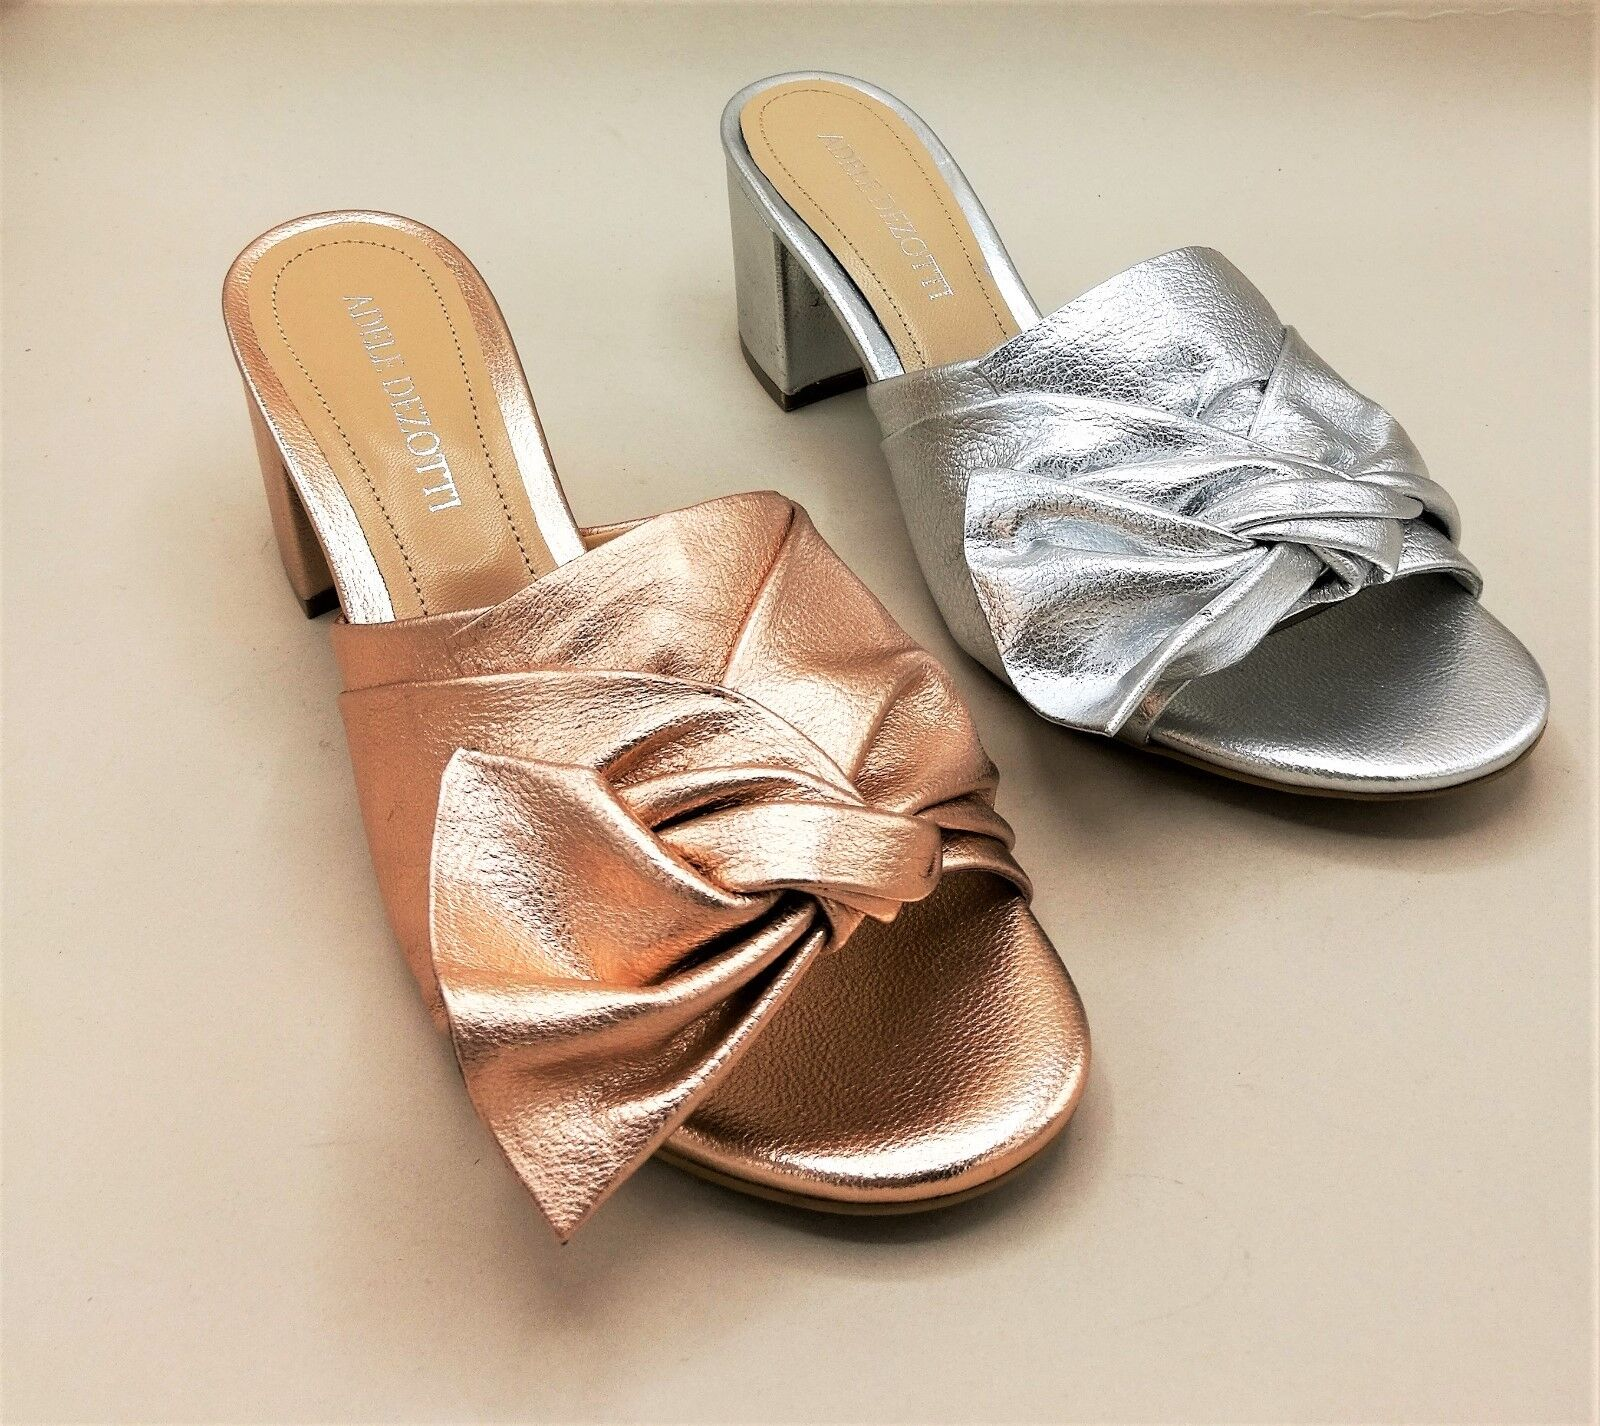 Adele Dezotti P1301 sandal laminated copper   silver with bow heel large 6 cm